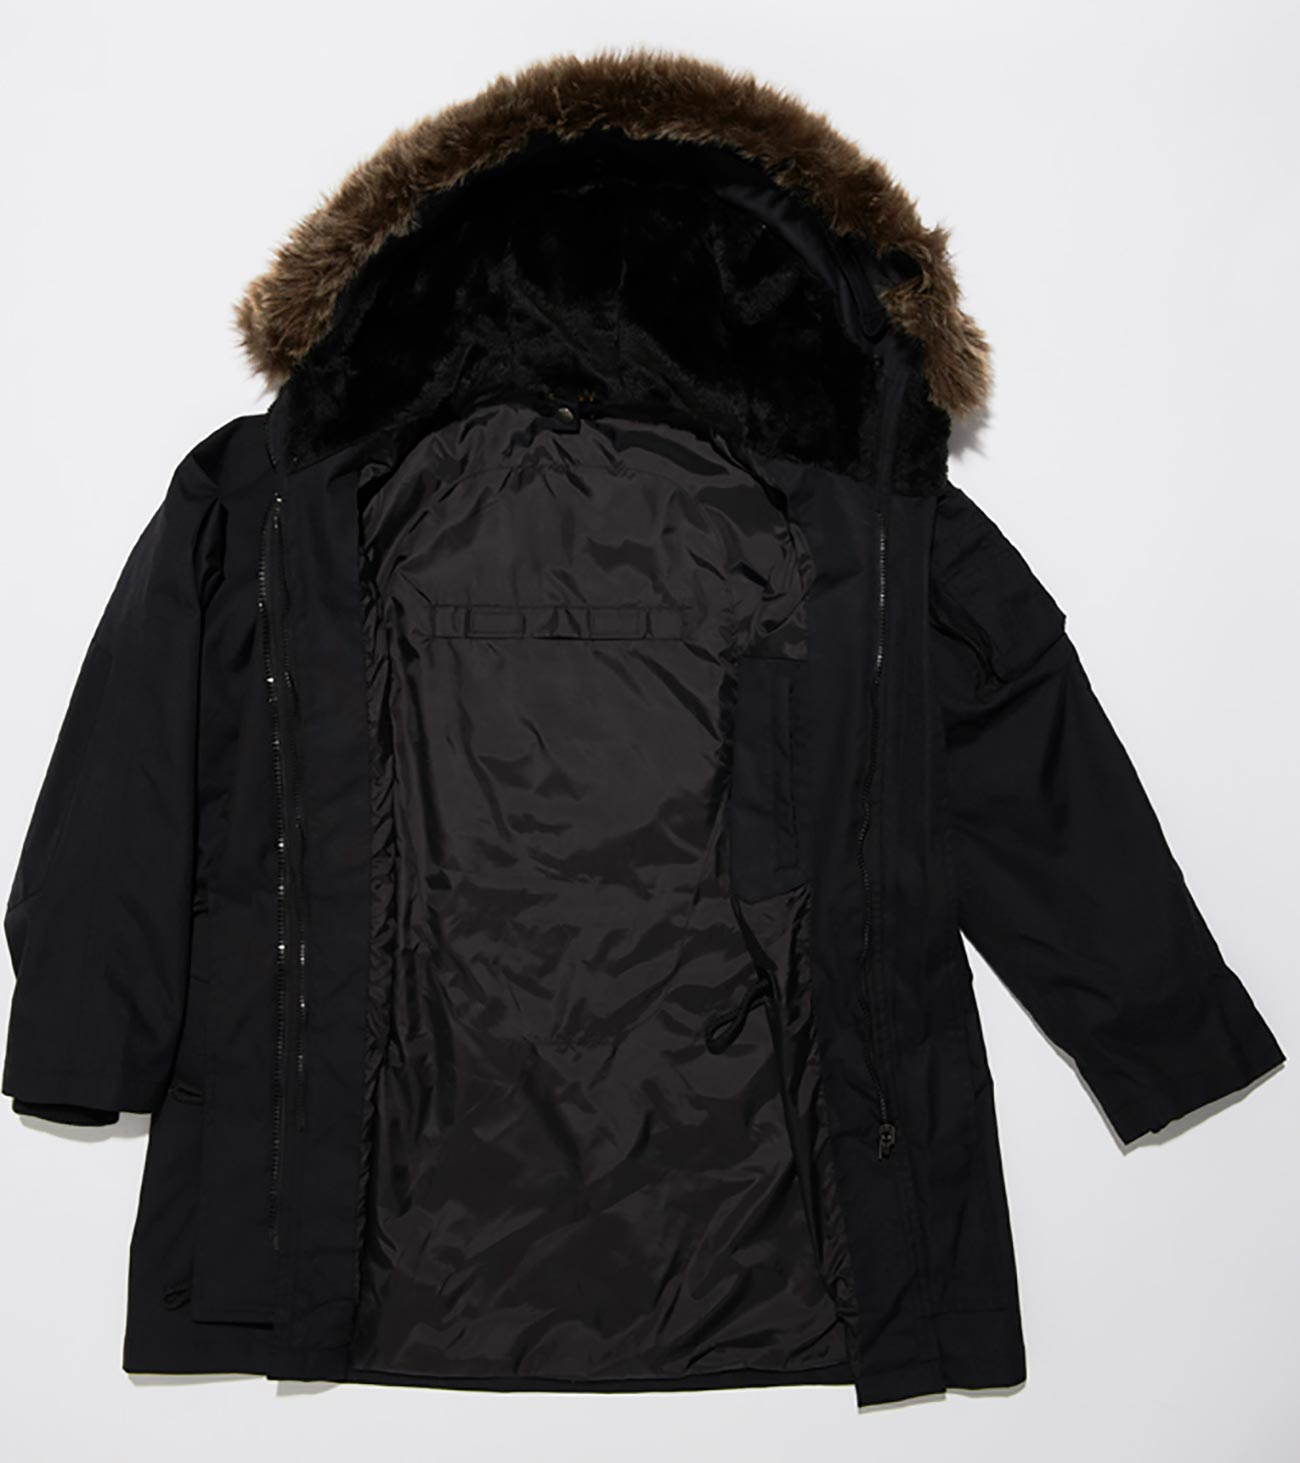 Steph Fur Women's Parka Jacket - Black